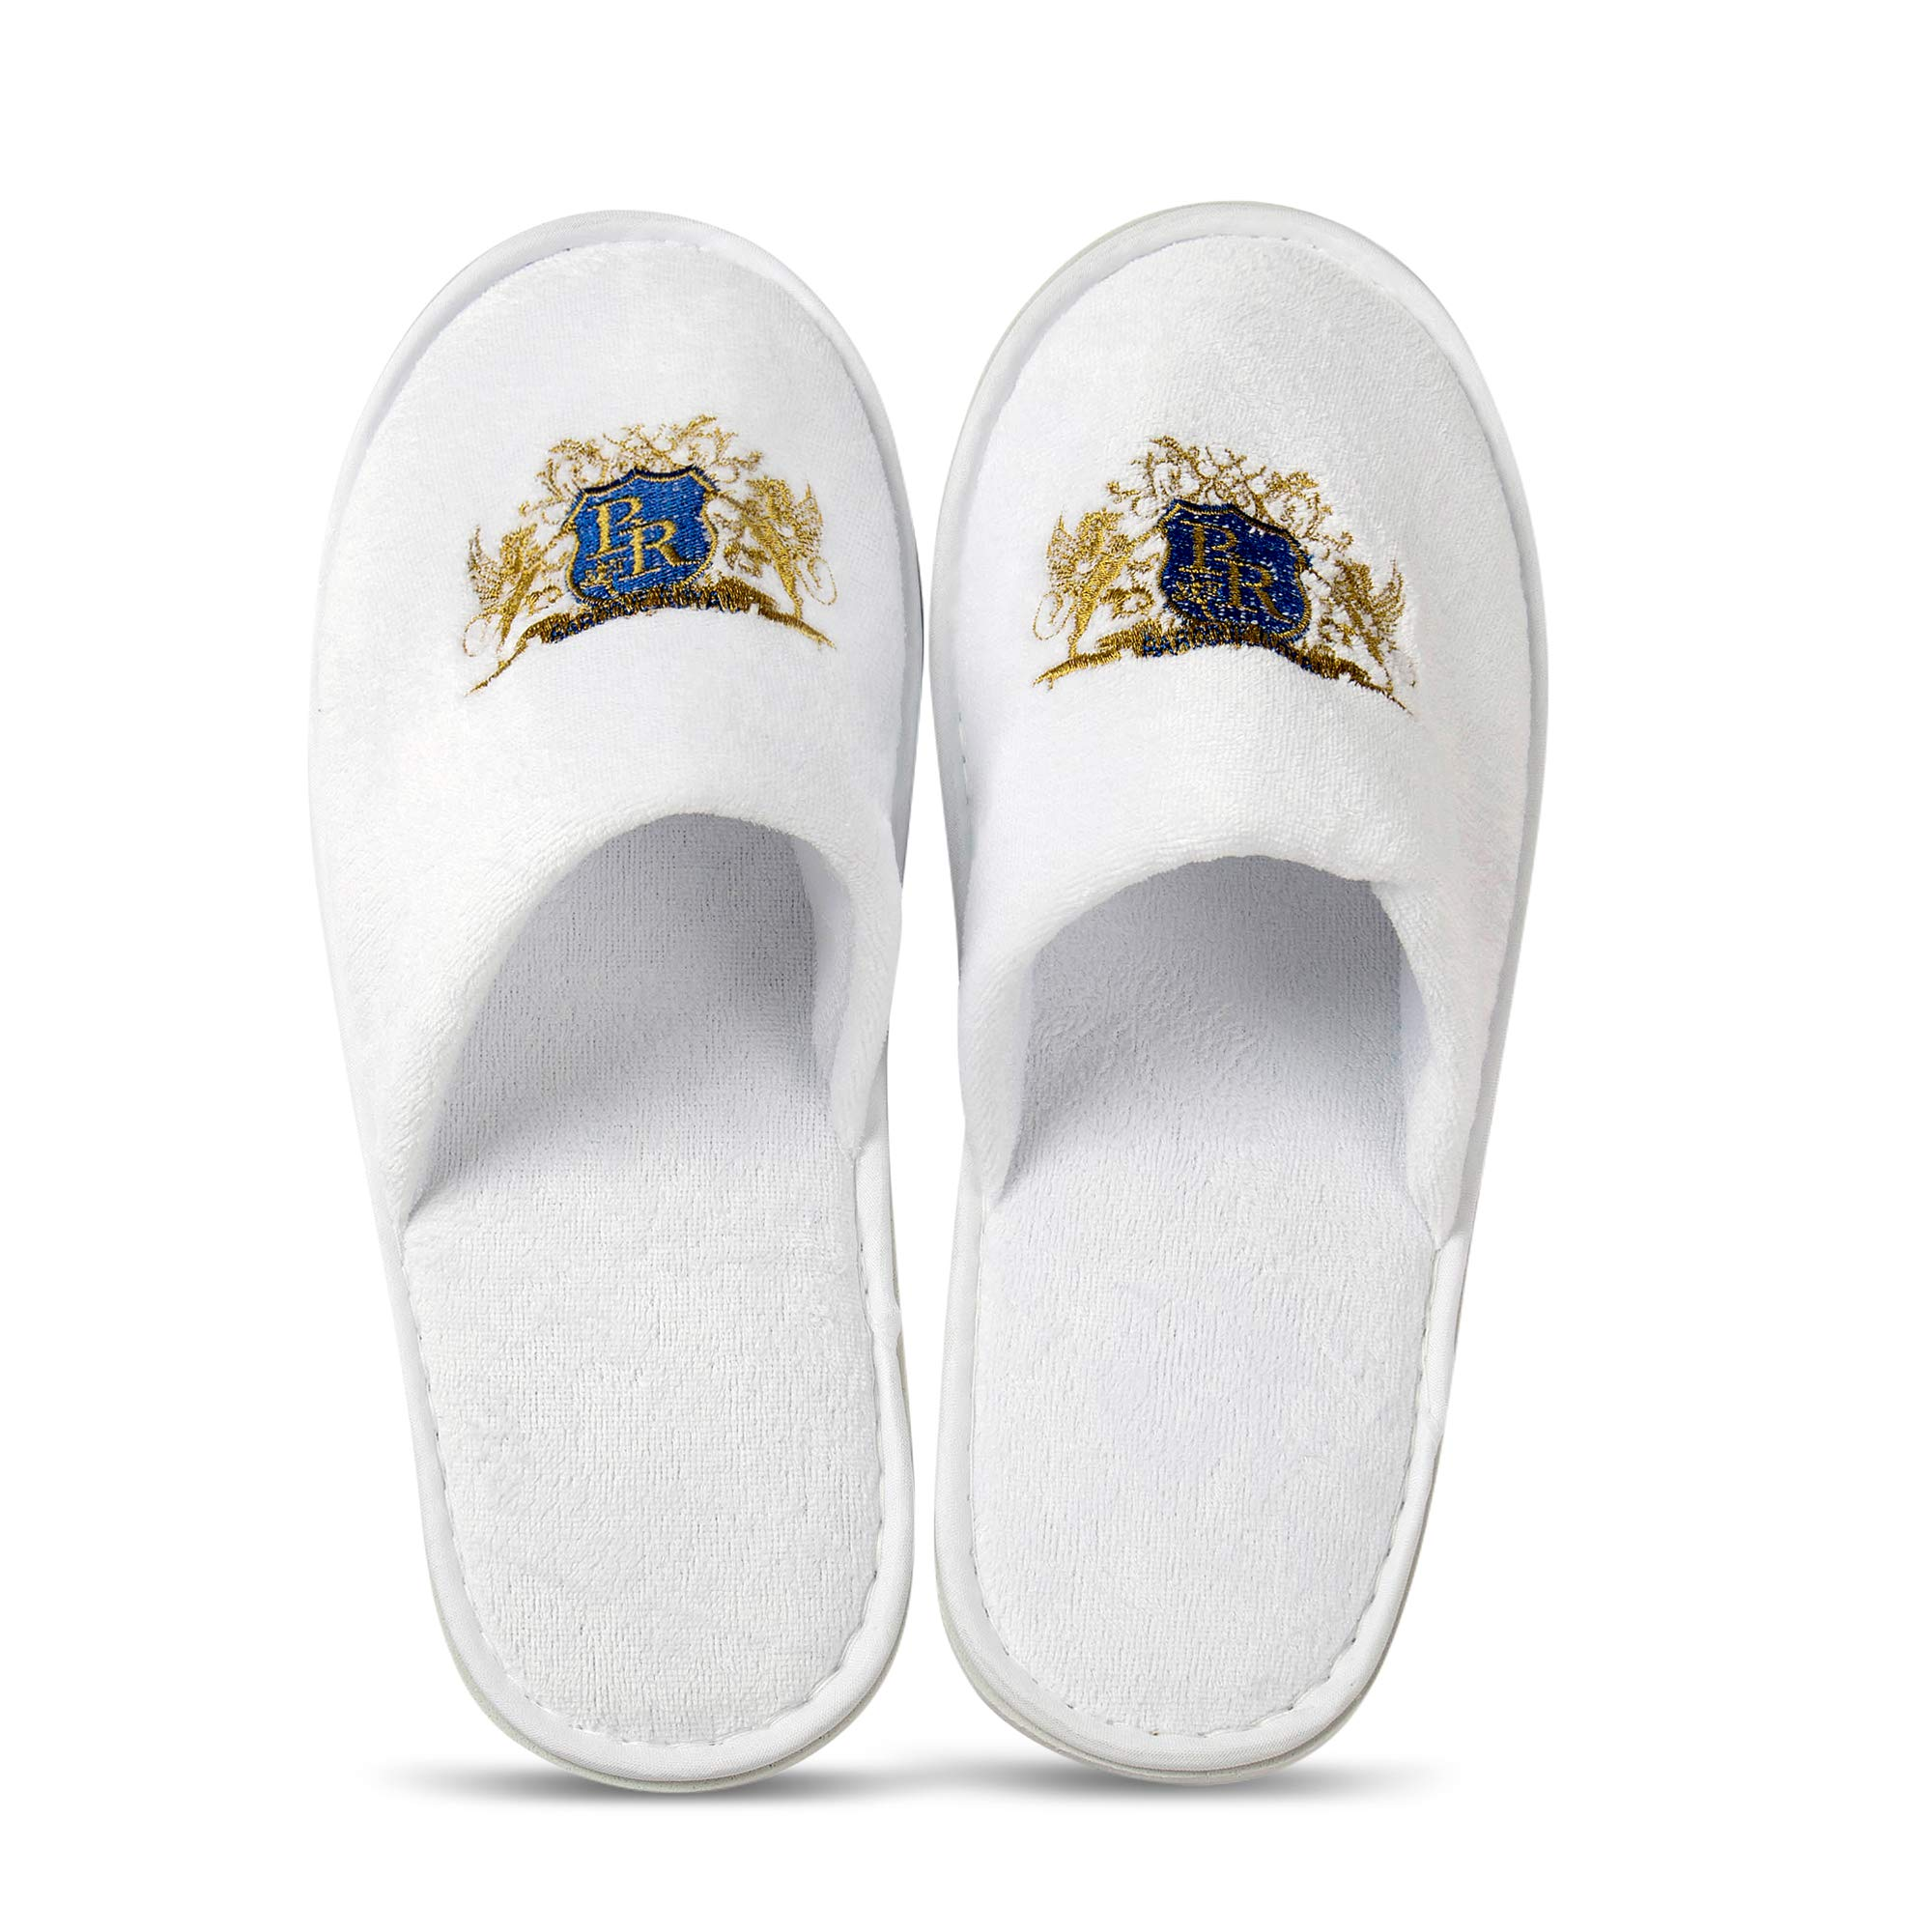 Baroque Royal Disposable Indoor Spa Slippers, Bulk Pack of 12, Soft Cotton Hotel Slippers for Guests, Non-Slip EVA Sole, White Closed Toe Home Slippers for Women, Men, Travel, AirBnb, Bridesmaids by Baroque Royal